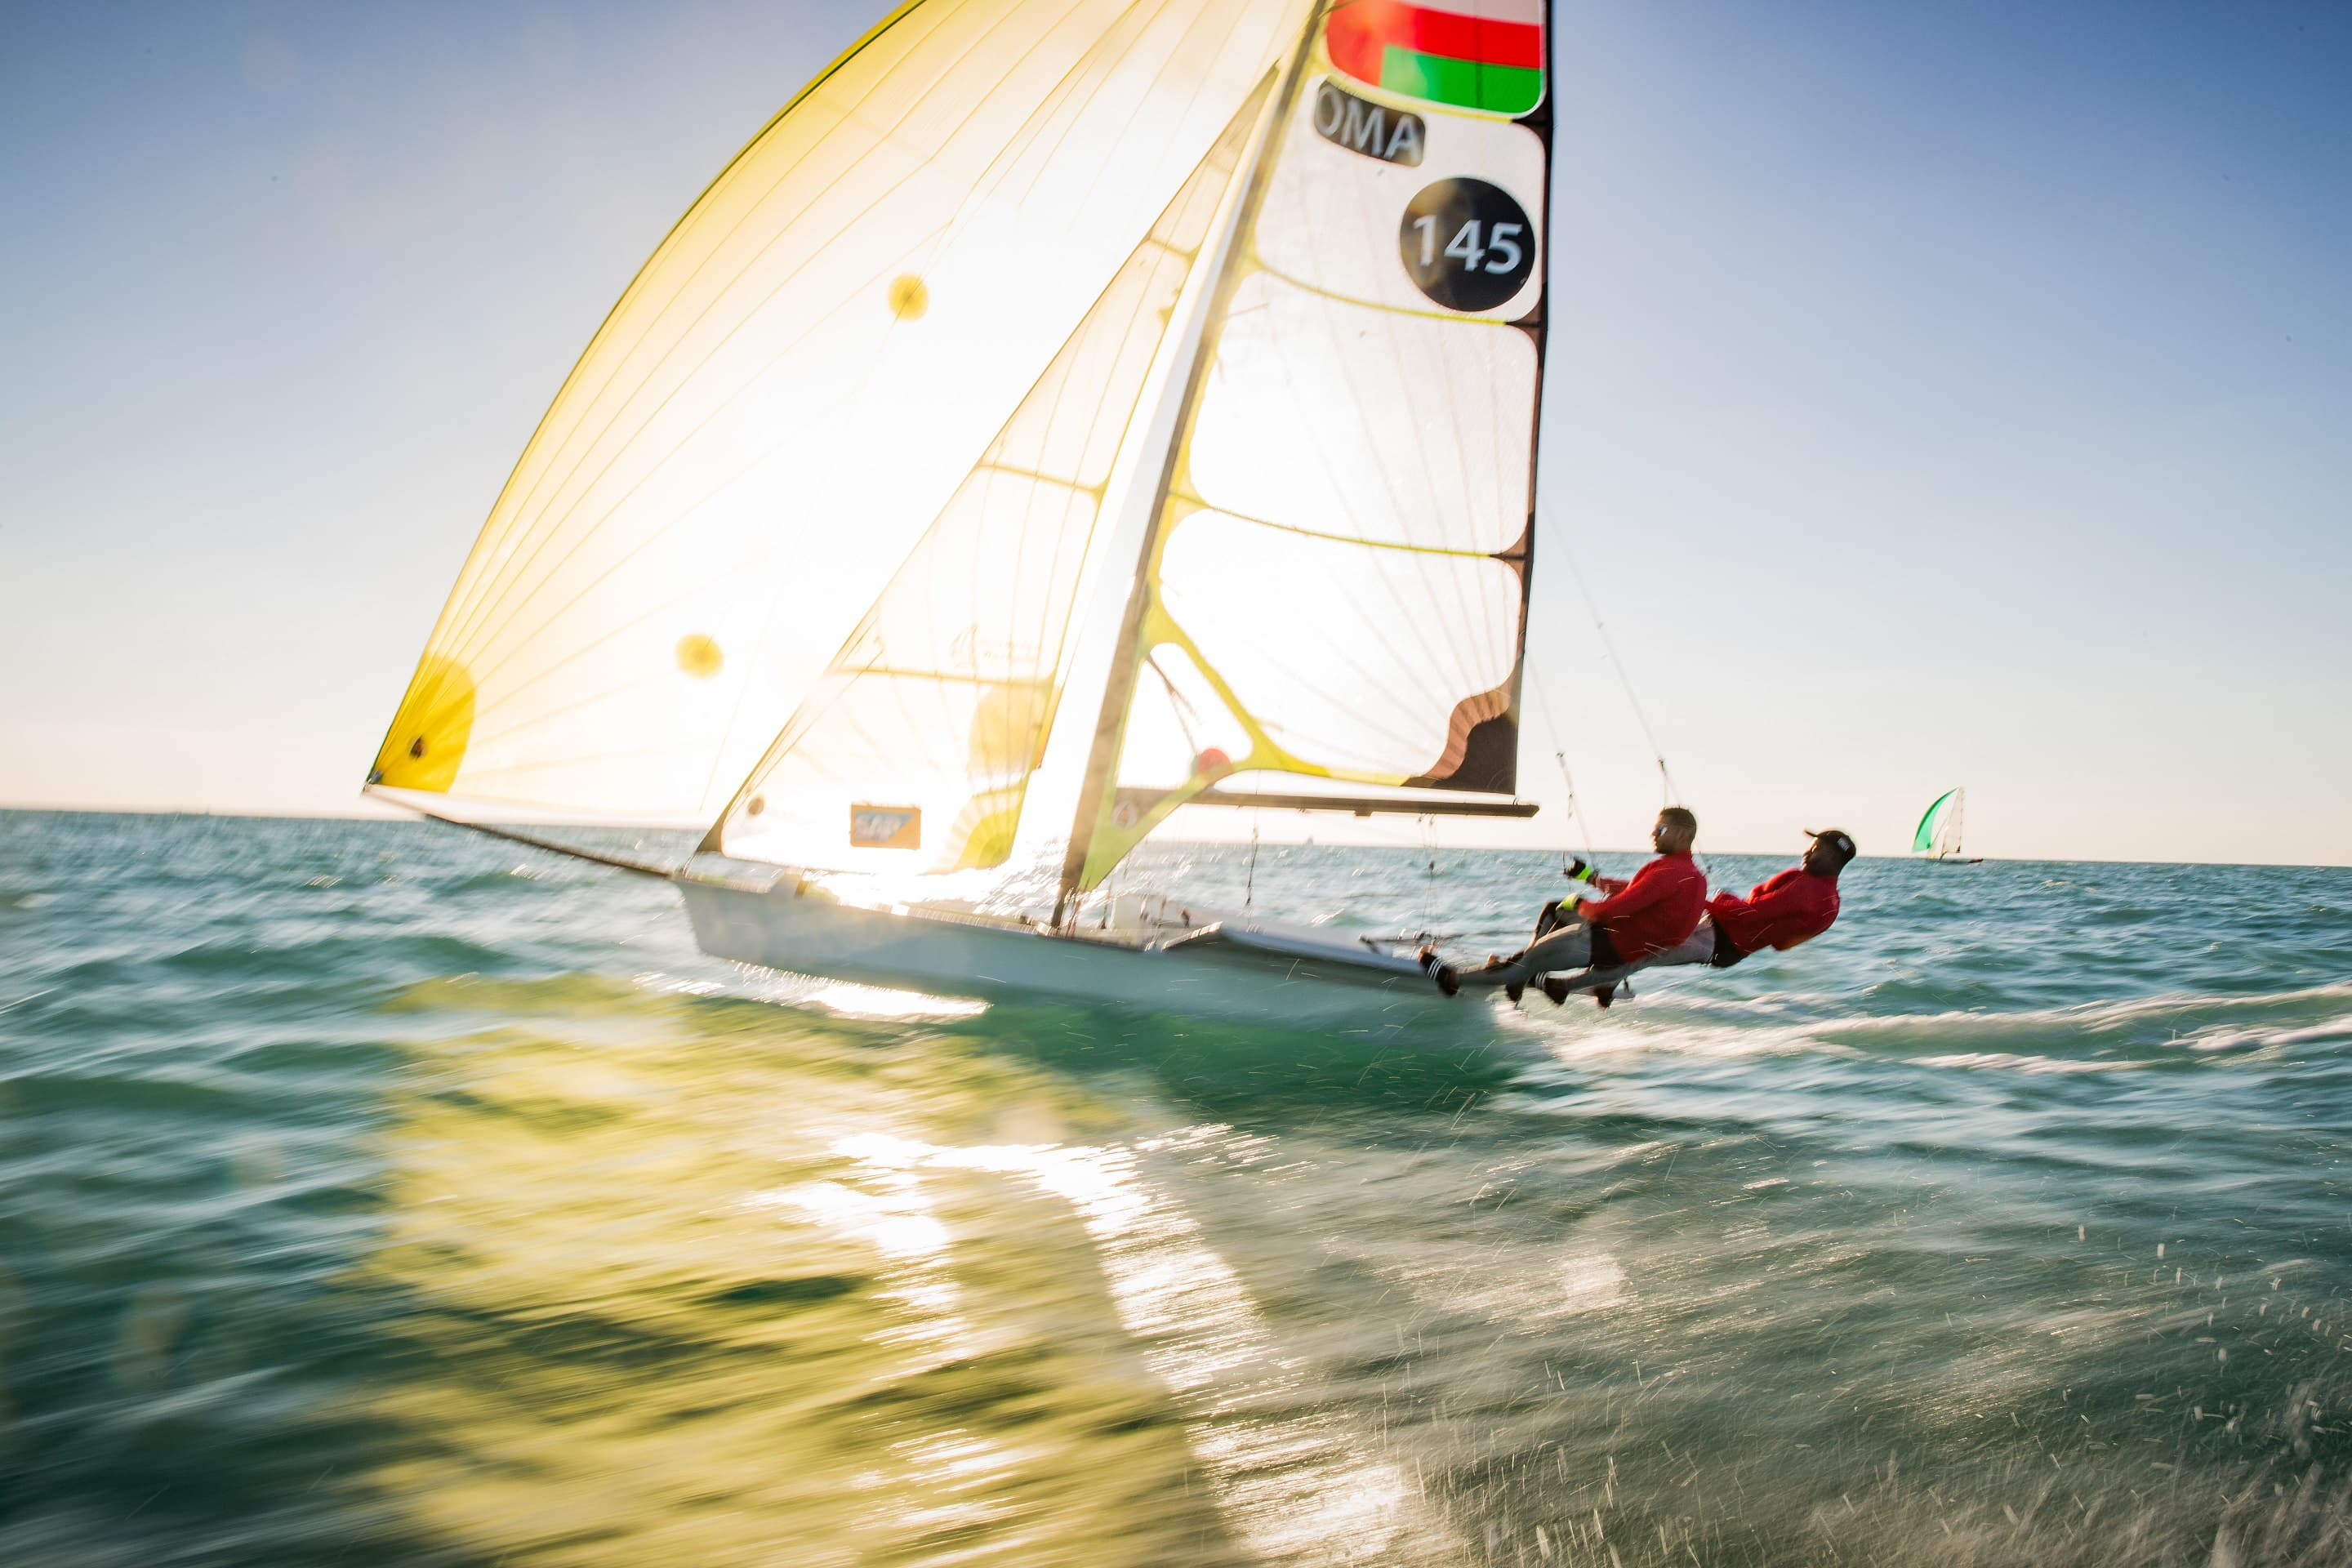 Oman Sail to host the 2021 49er, 49erFX, and Nacra 17 World Championships